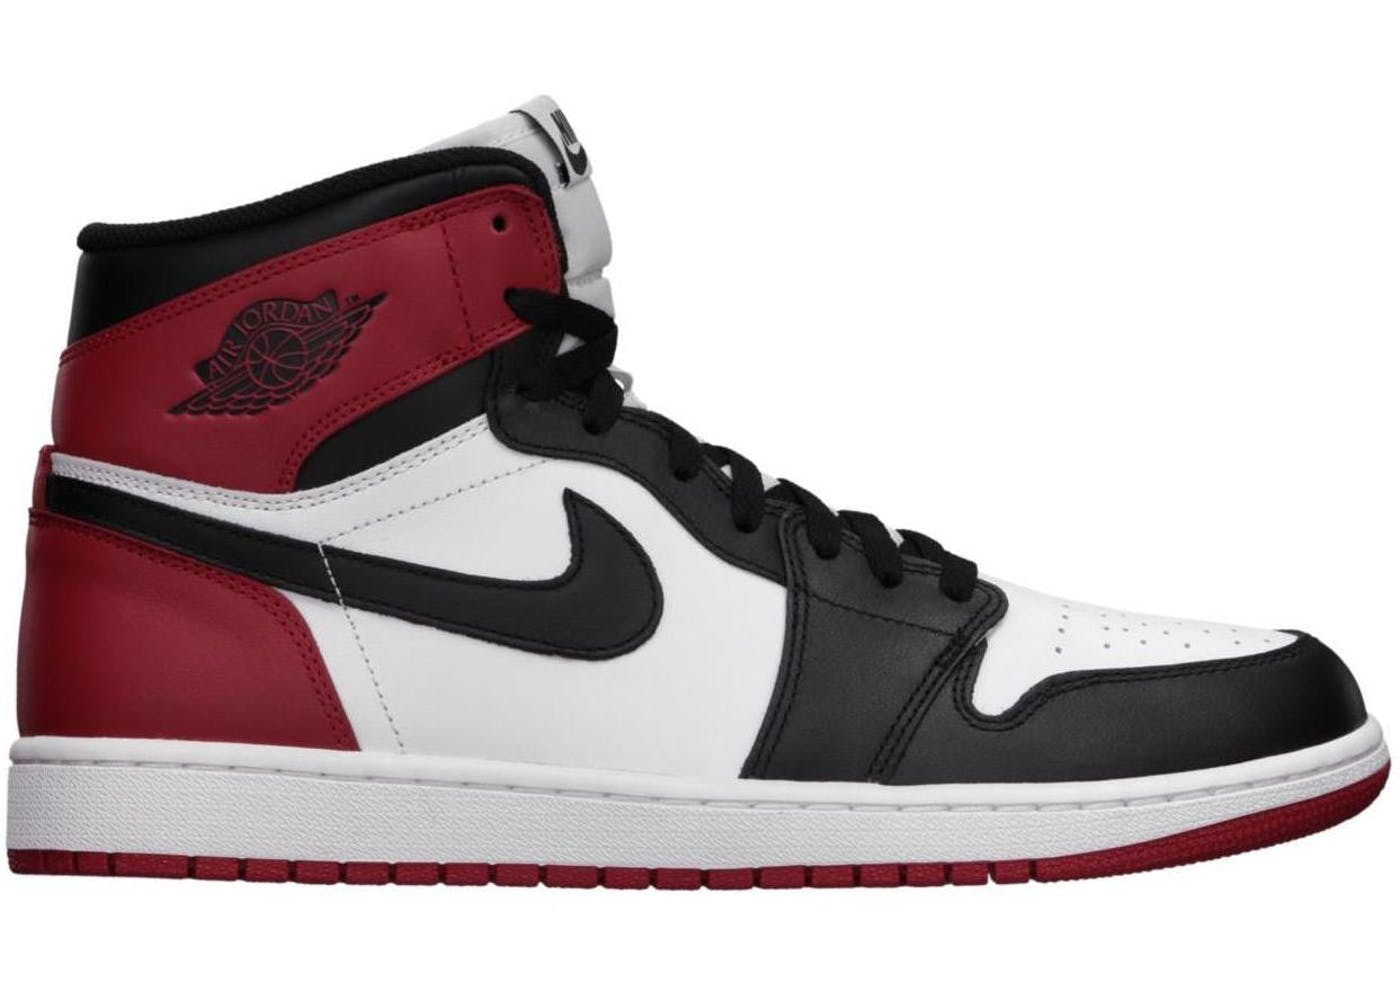 9613aef3f01 MJMondays  Jordan 1 Black Toes - StockX News